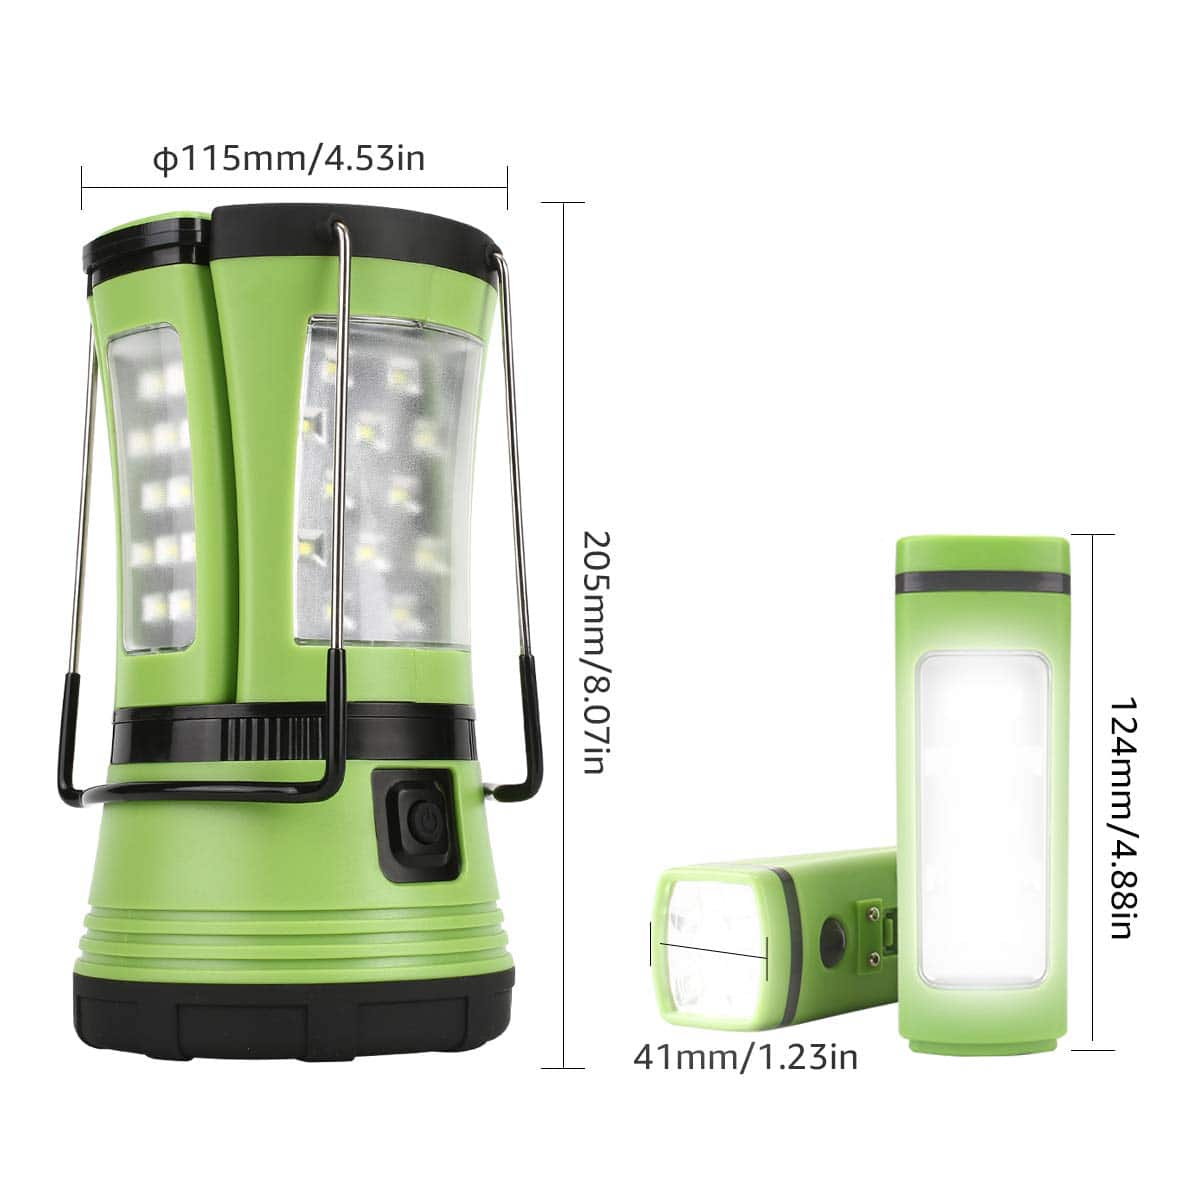 600LM LE LED Camping Lantern Rechargeable - w/ 2 built in flashlights $20.29